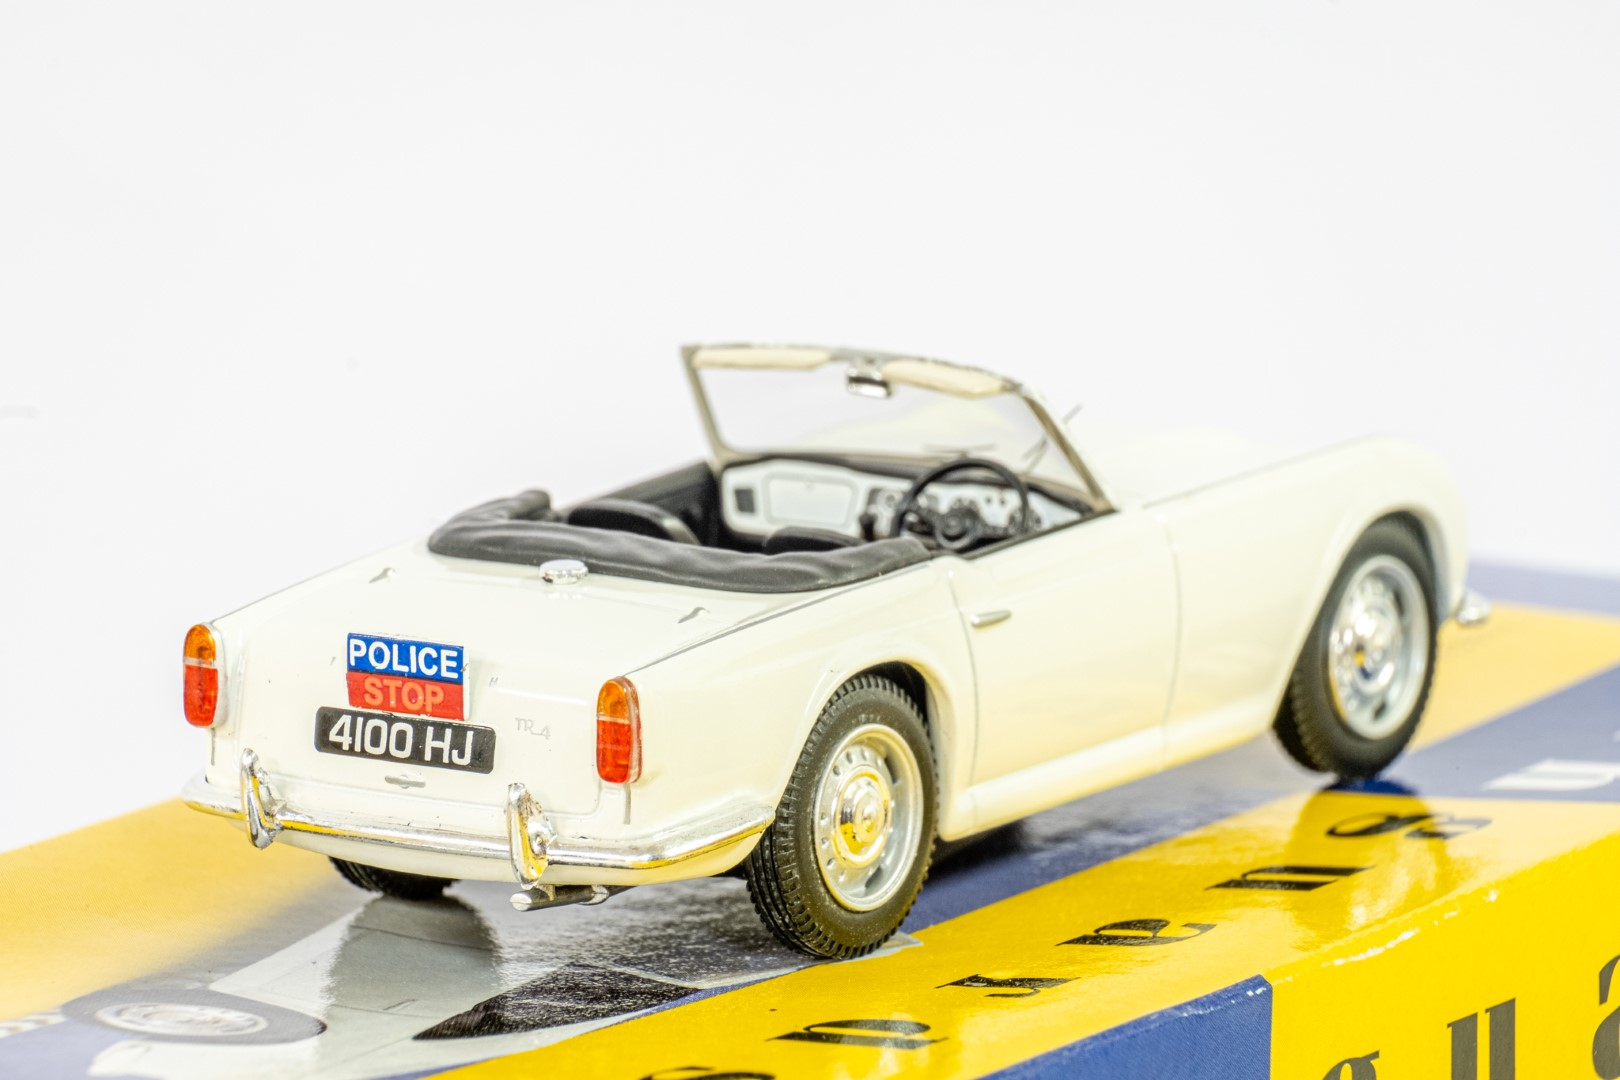 Vanguards Triumph TR4 - Southend On Sea Constabulary - Image 6 of 6